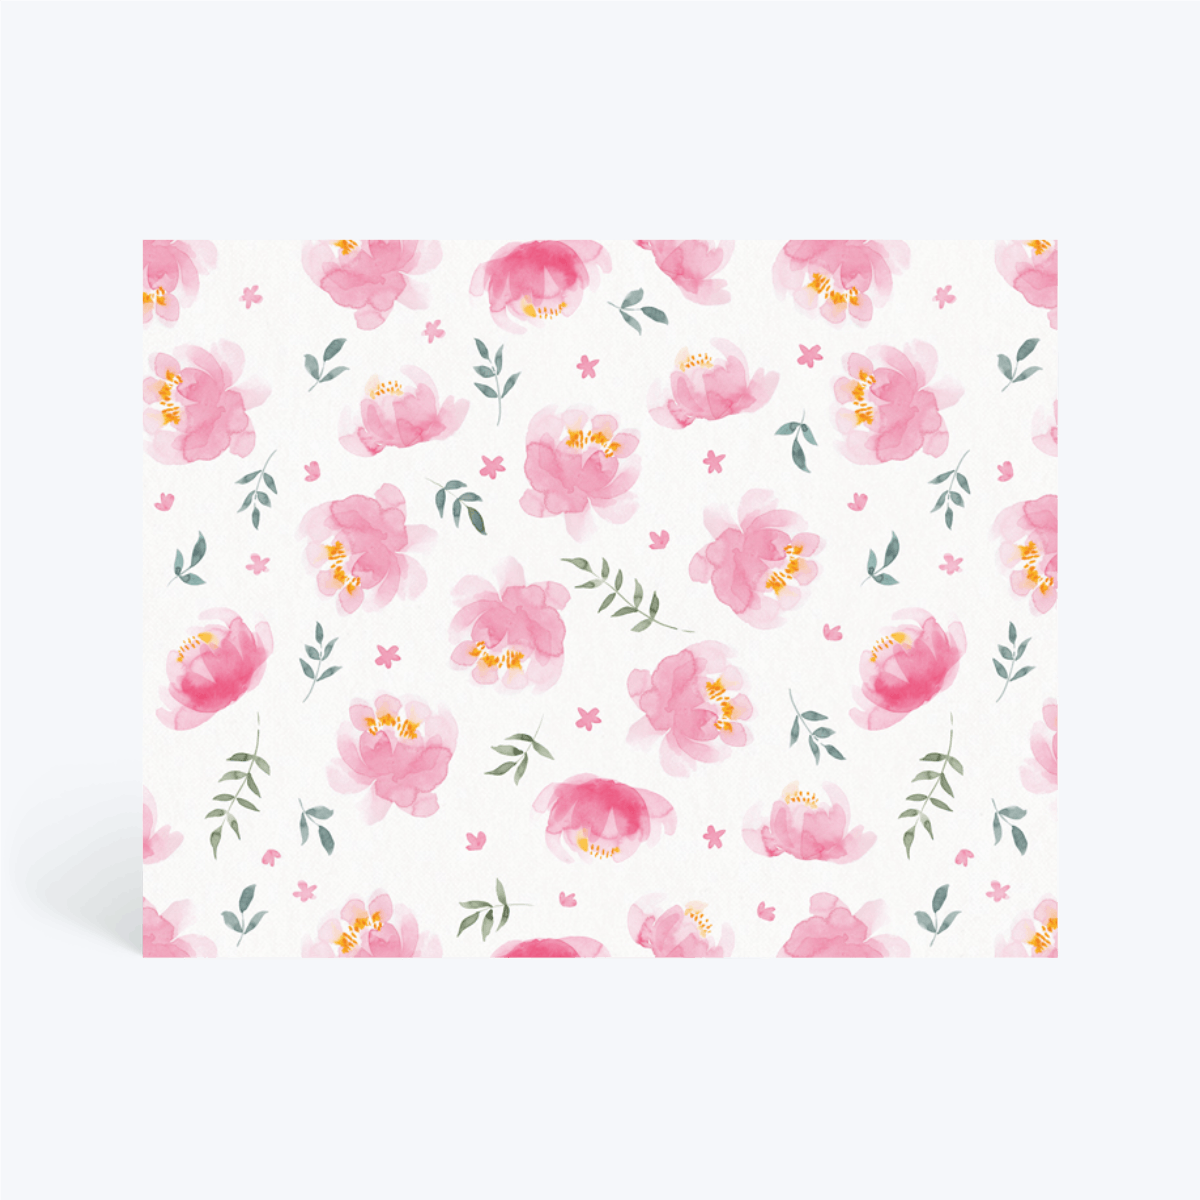 Https%3a%2f%2fwww.papier.com%2fproduct image%2f43776%2f29%2fpeonies 11081 back 1534505290.png?ixlib=rb 1.1